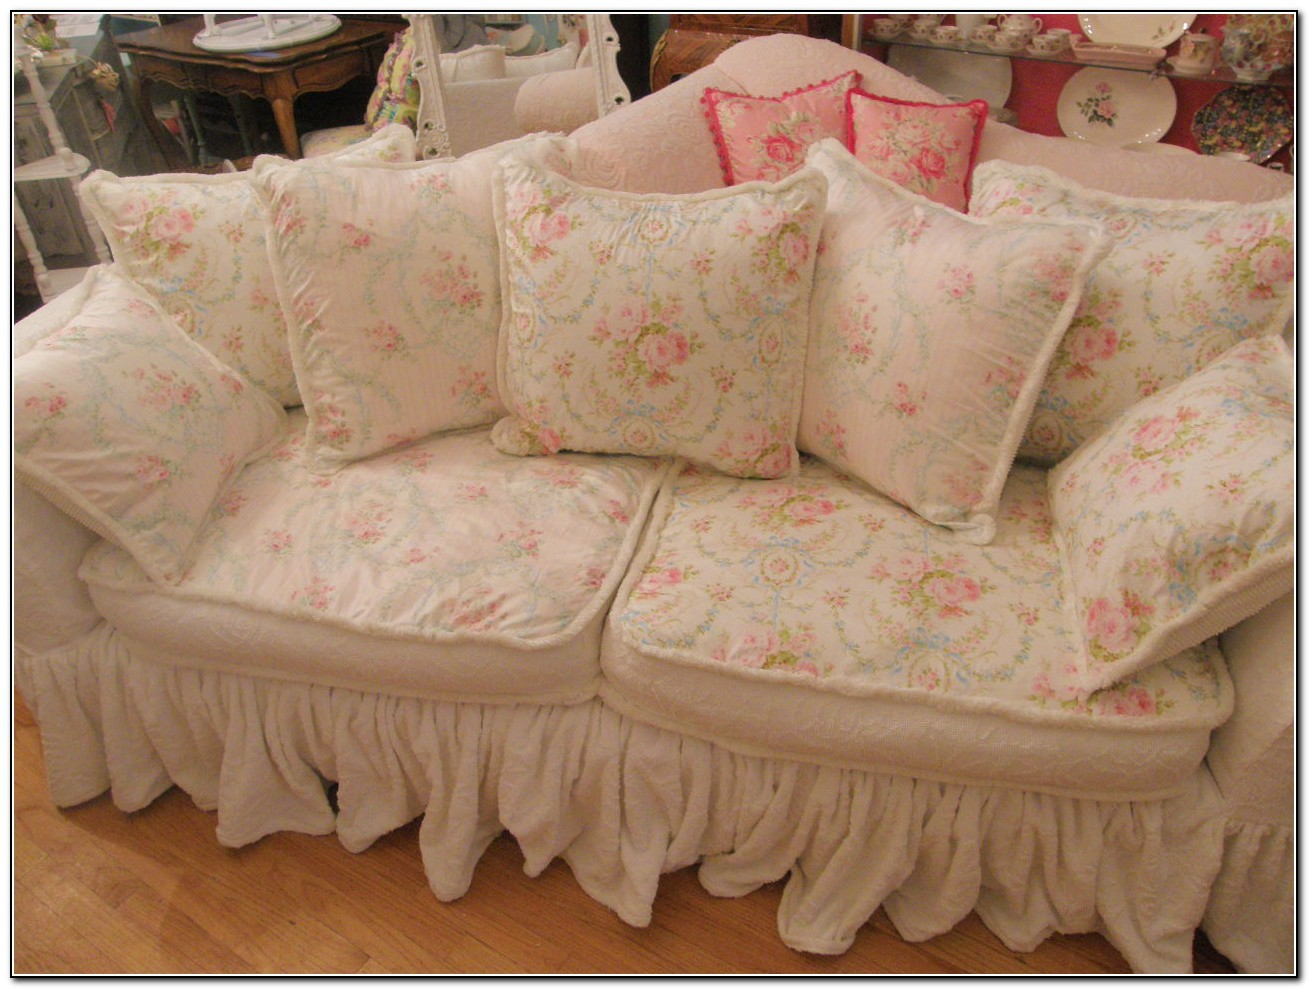 shabby chic sofa covers sofa home design ideas kypzeokqoq15468. Black Bedroom Furniture Sets. Home Design Ideas